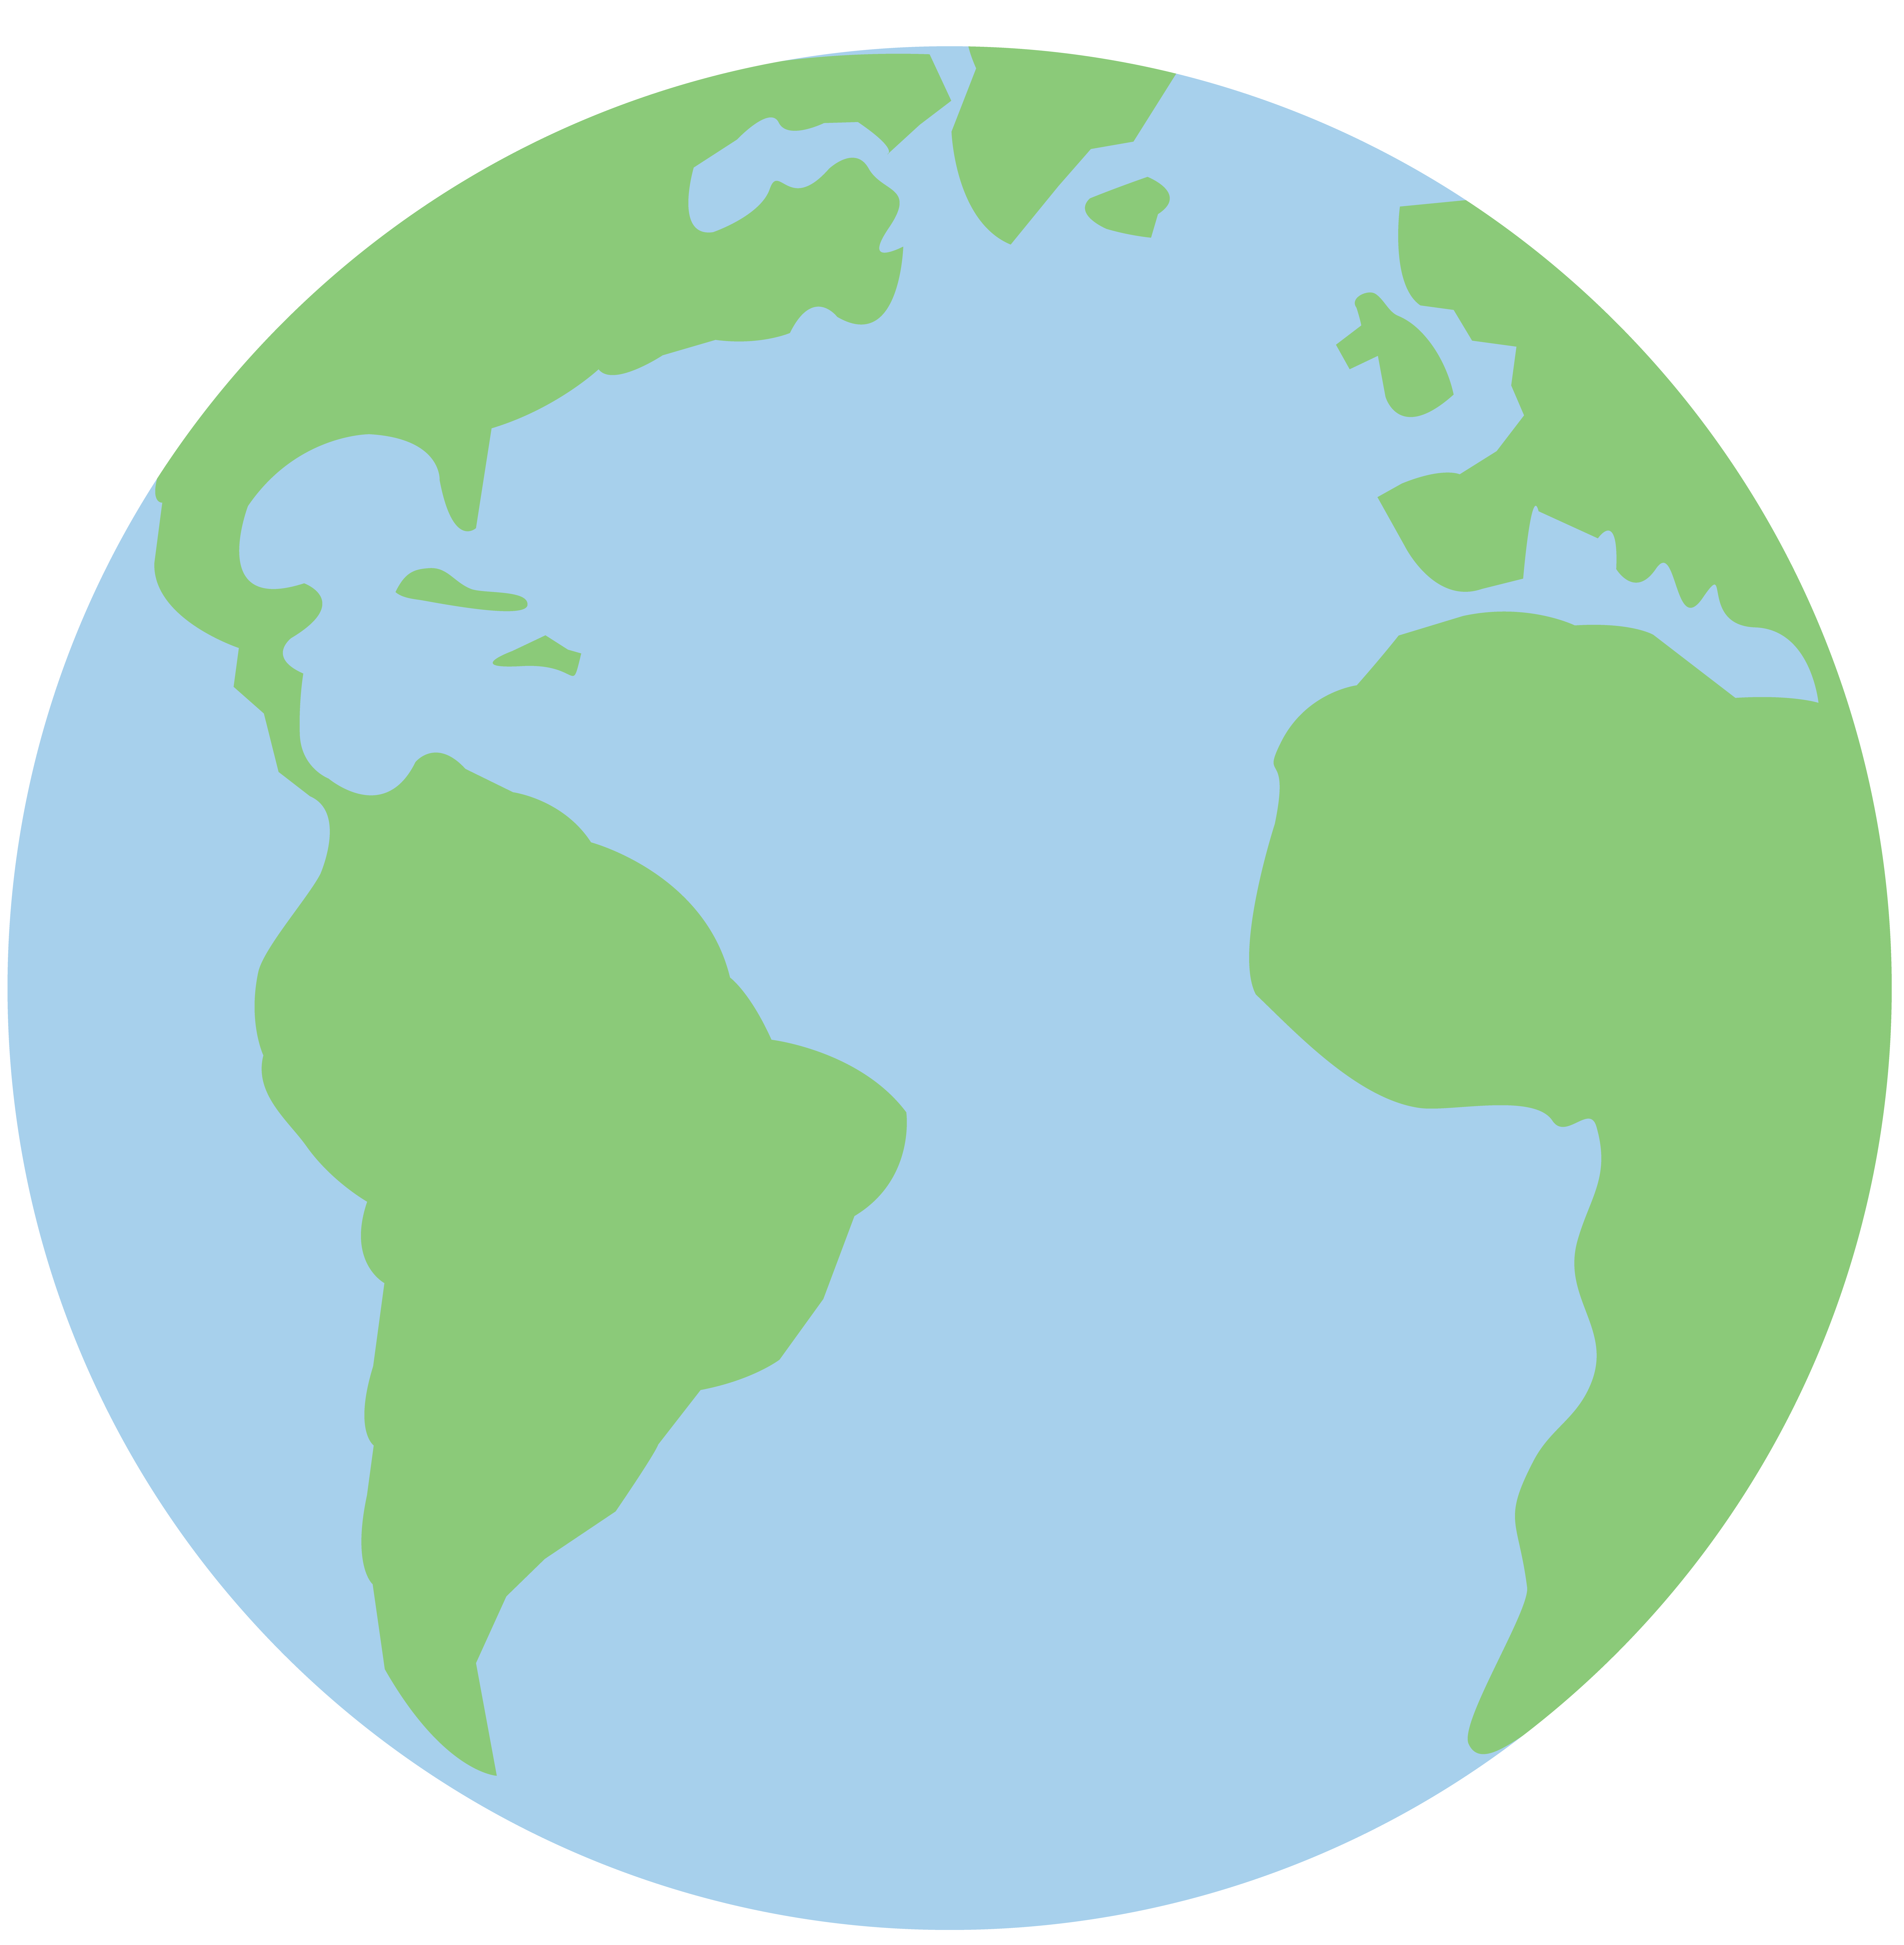 7205x7362 Pastel Colored Planet Earth